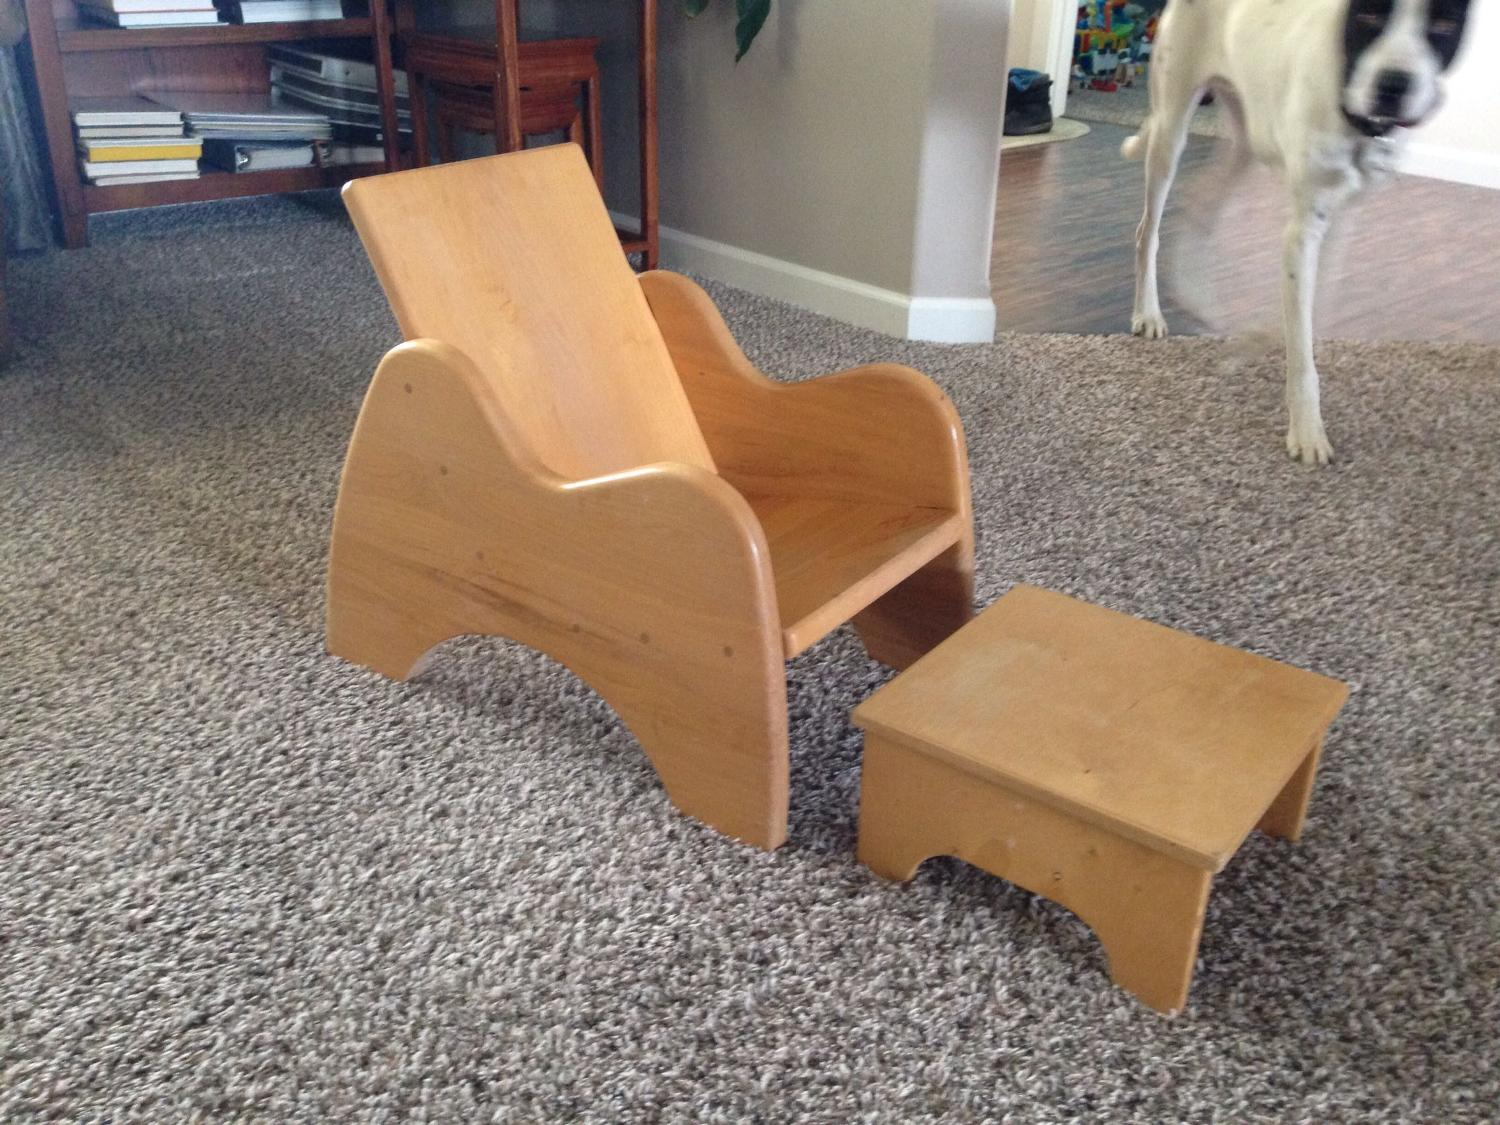 Best child 39 s chair w footstool for sale in ellensburg for Furniture ellensburg